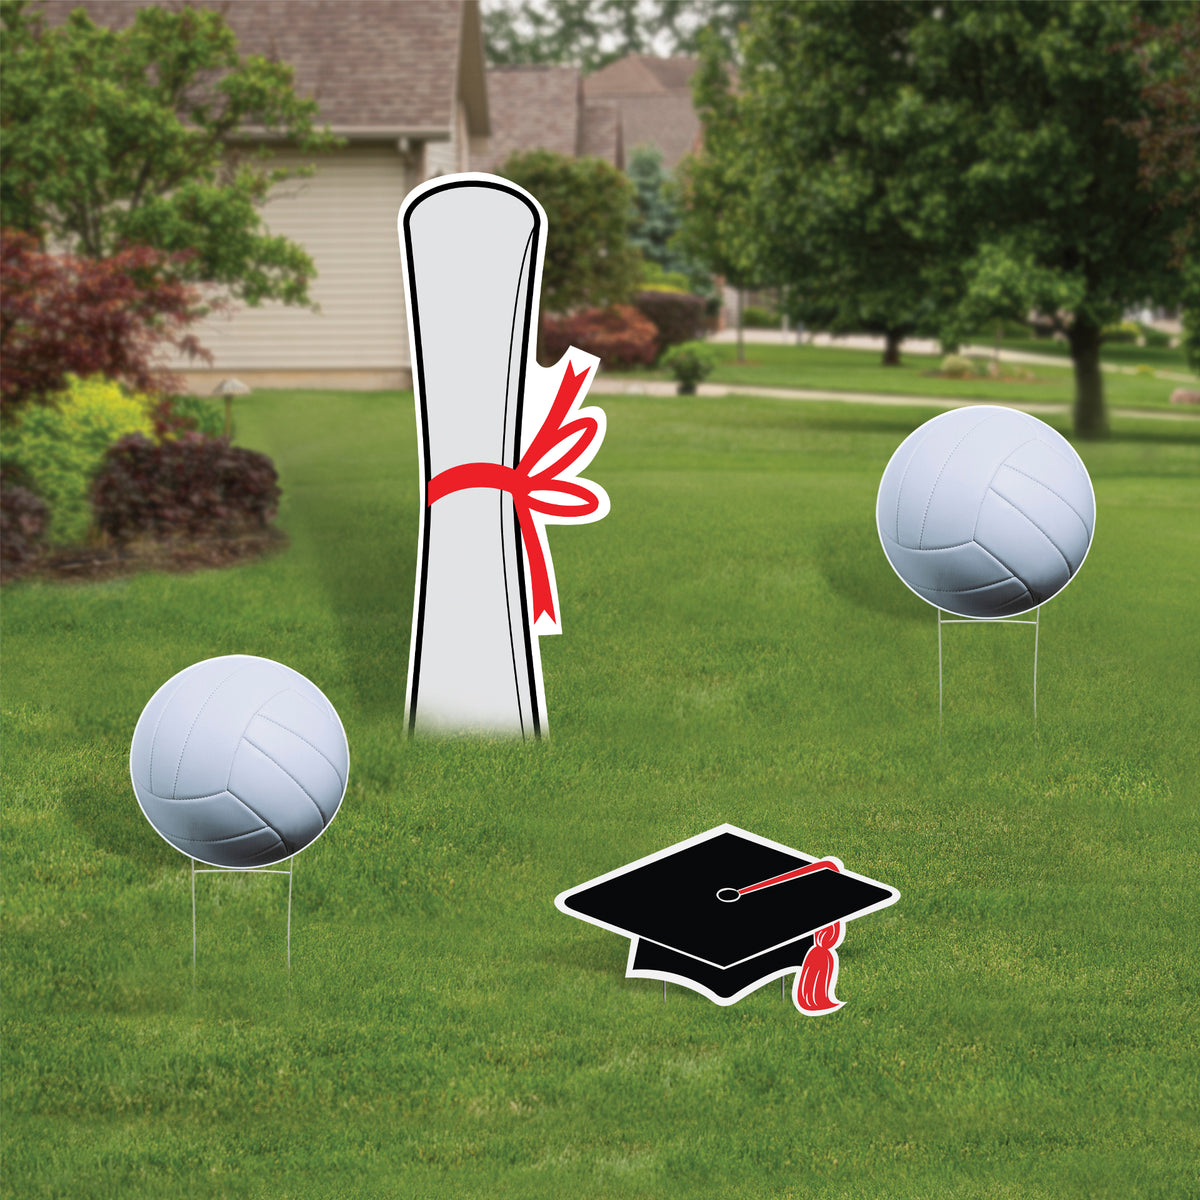 Volleyball Graduation Yard Sign Expression Icon Set